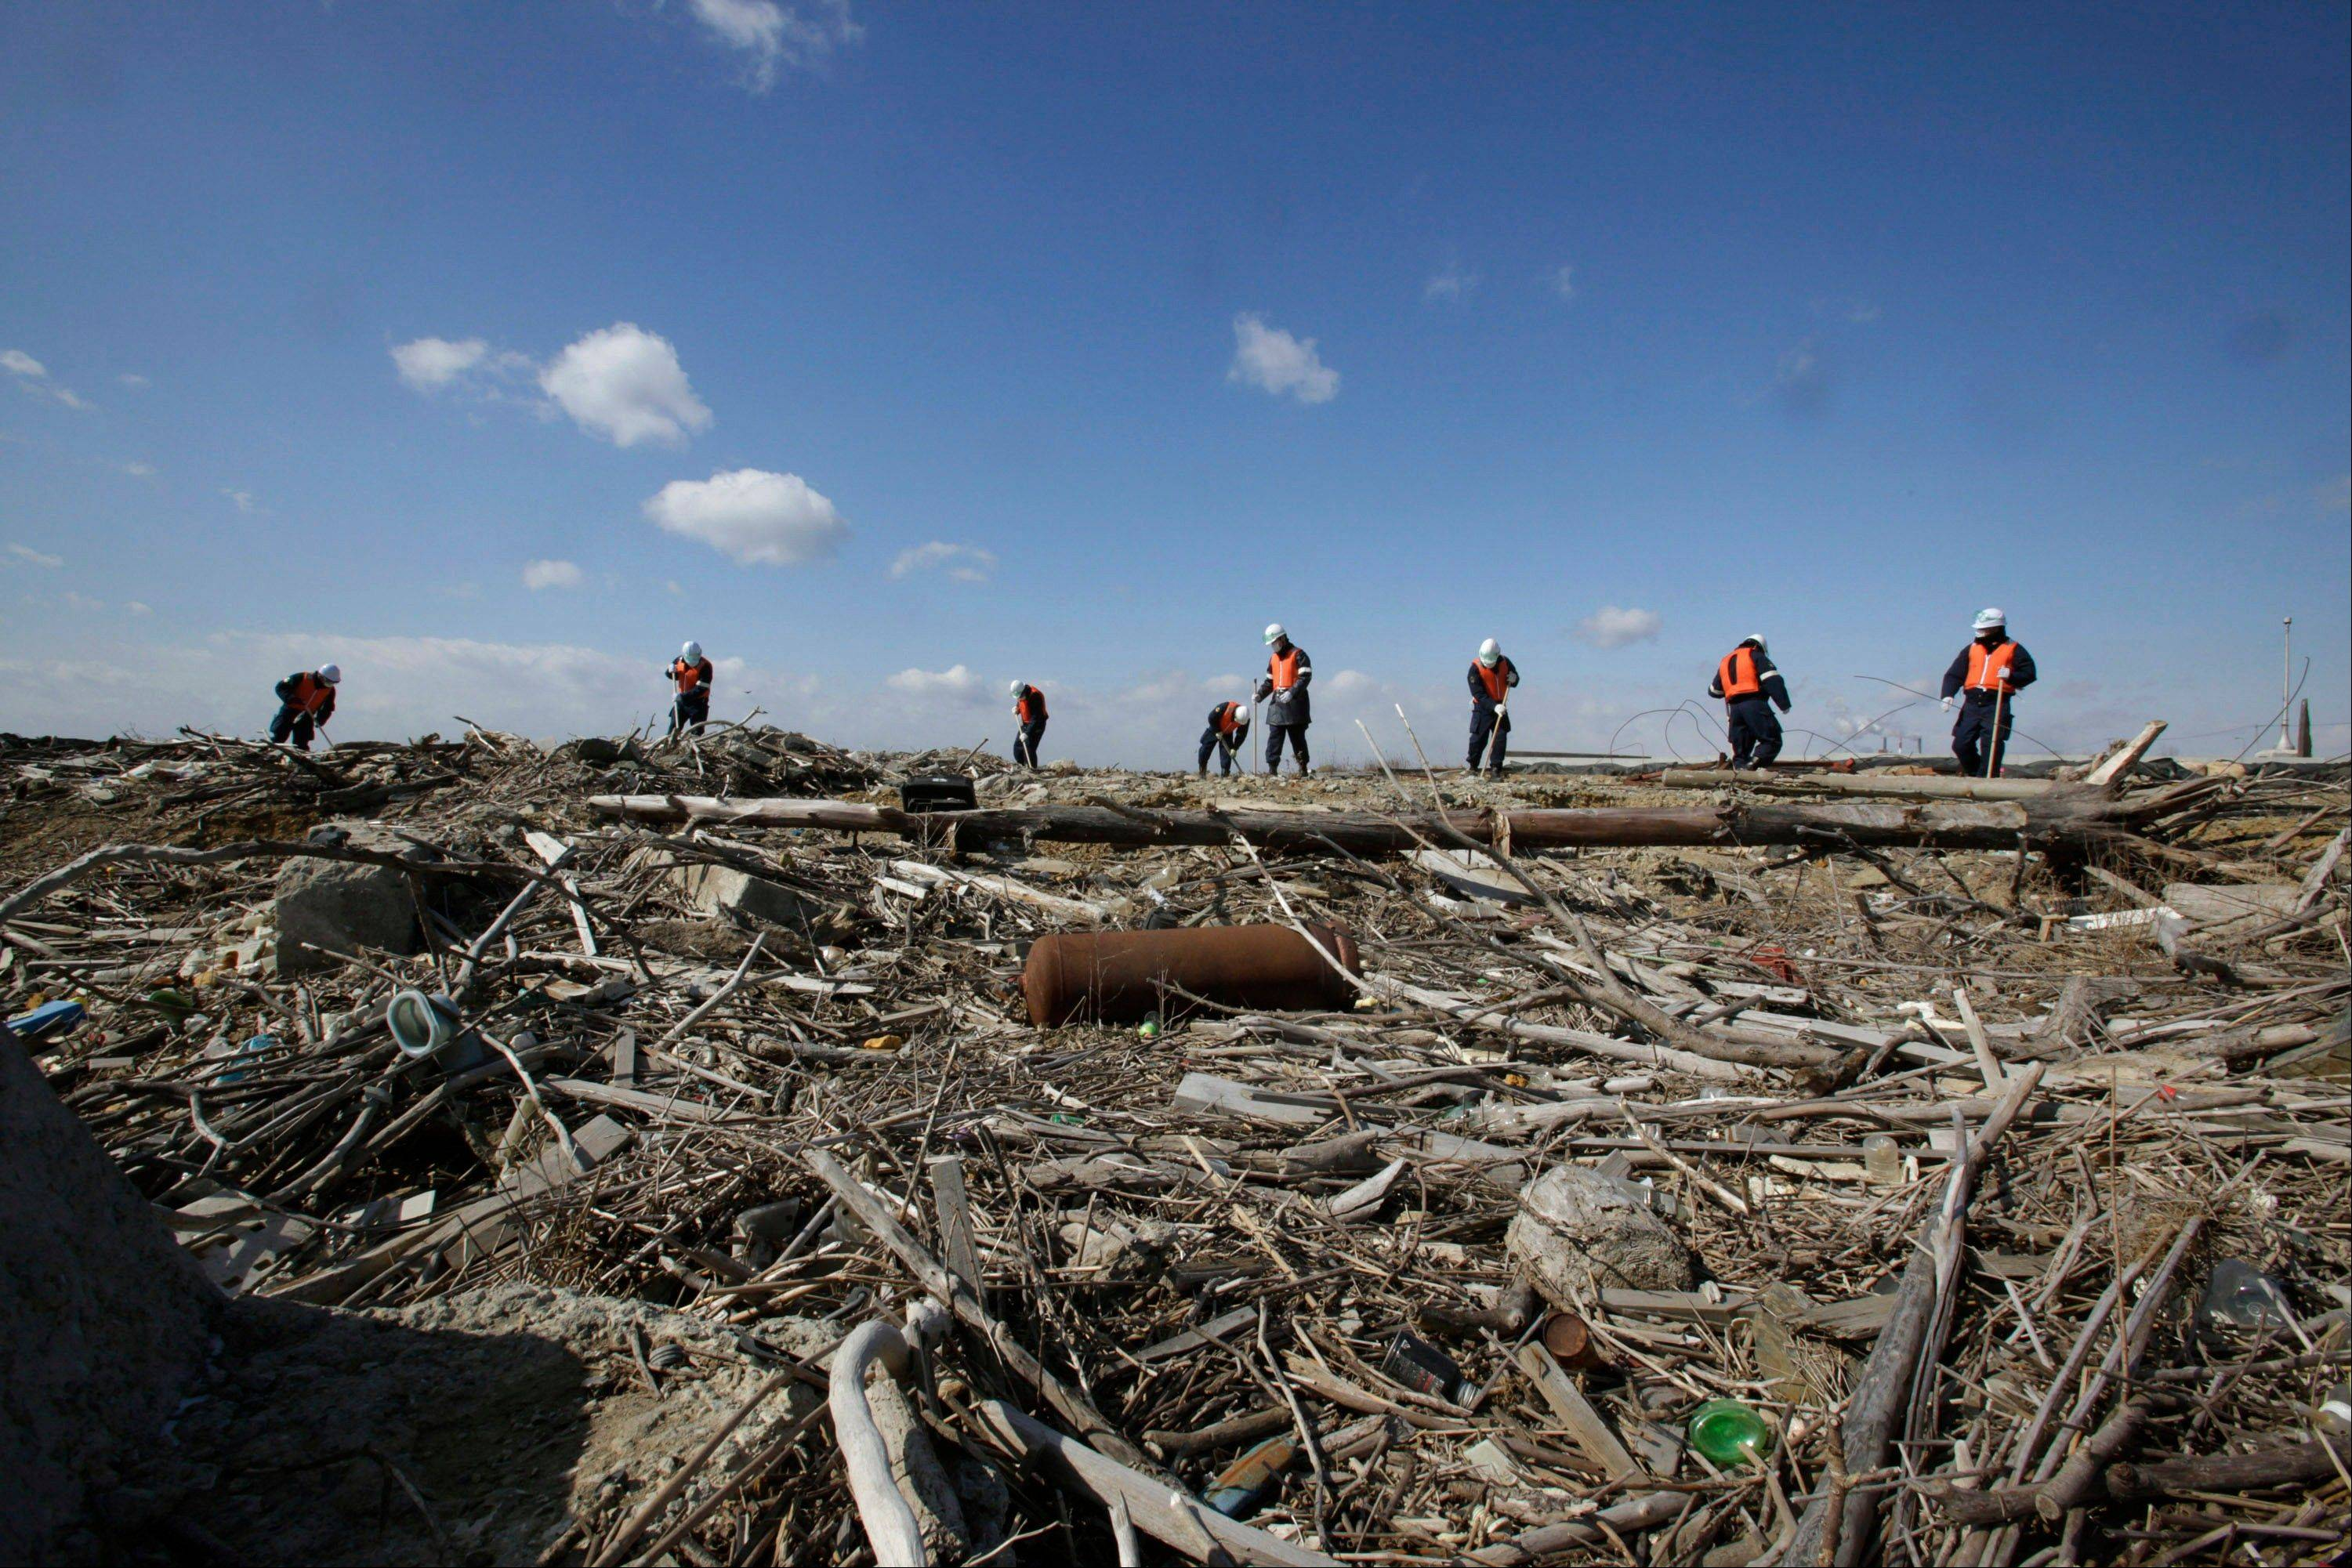 Police officers search for the remains of those who went missing in the March 11, 2011 tsunami on the coastline in Ishinomaki, Miyagi Prefecture, northern Japan, Monday, March 11, 2013. The two-year anniversary Monday of Japan's devastating earthquake, tsunami and nuclear catastrophe is serving to spotlight the stakes of the country's struggles to clean up radiation, rebuild lost communities and determine new energy and economic strategies.